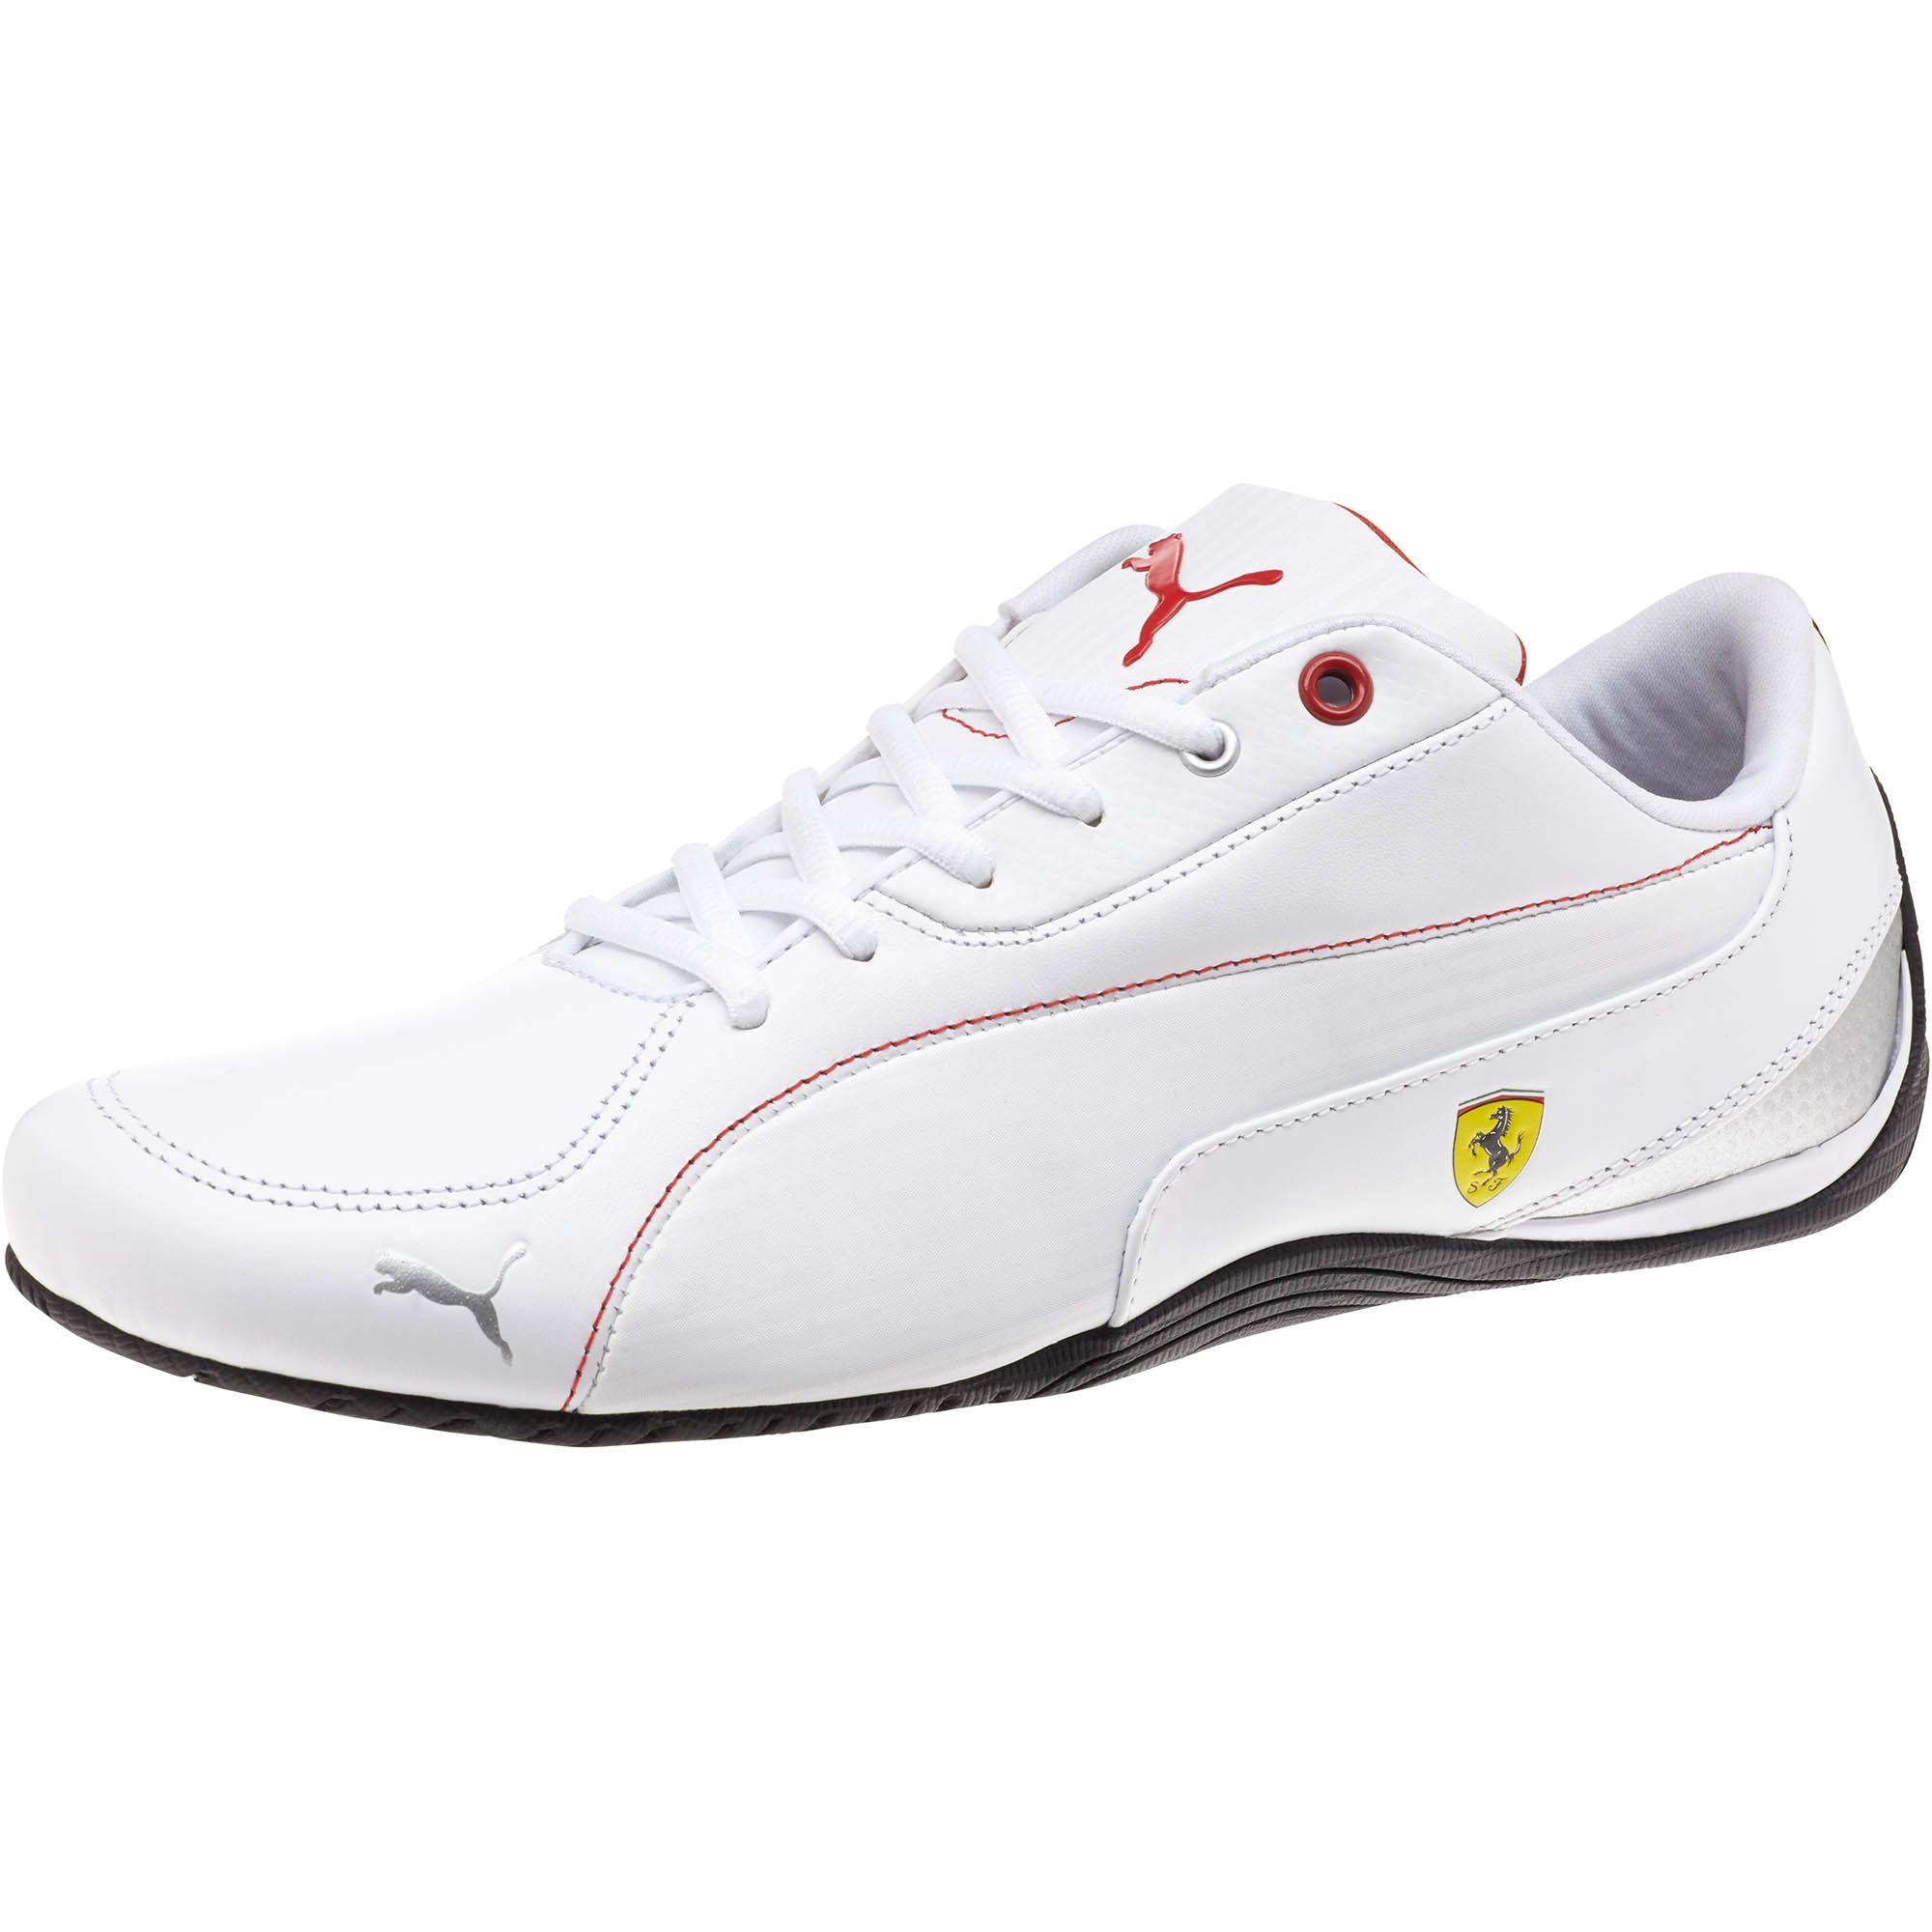 PUMA Ferrari Drift Cat 5 NM Men's Shoes | - from the official Puma® Online